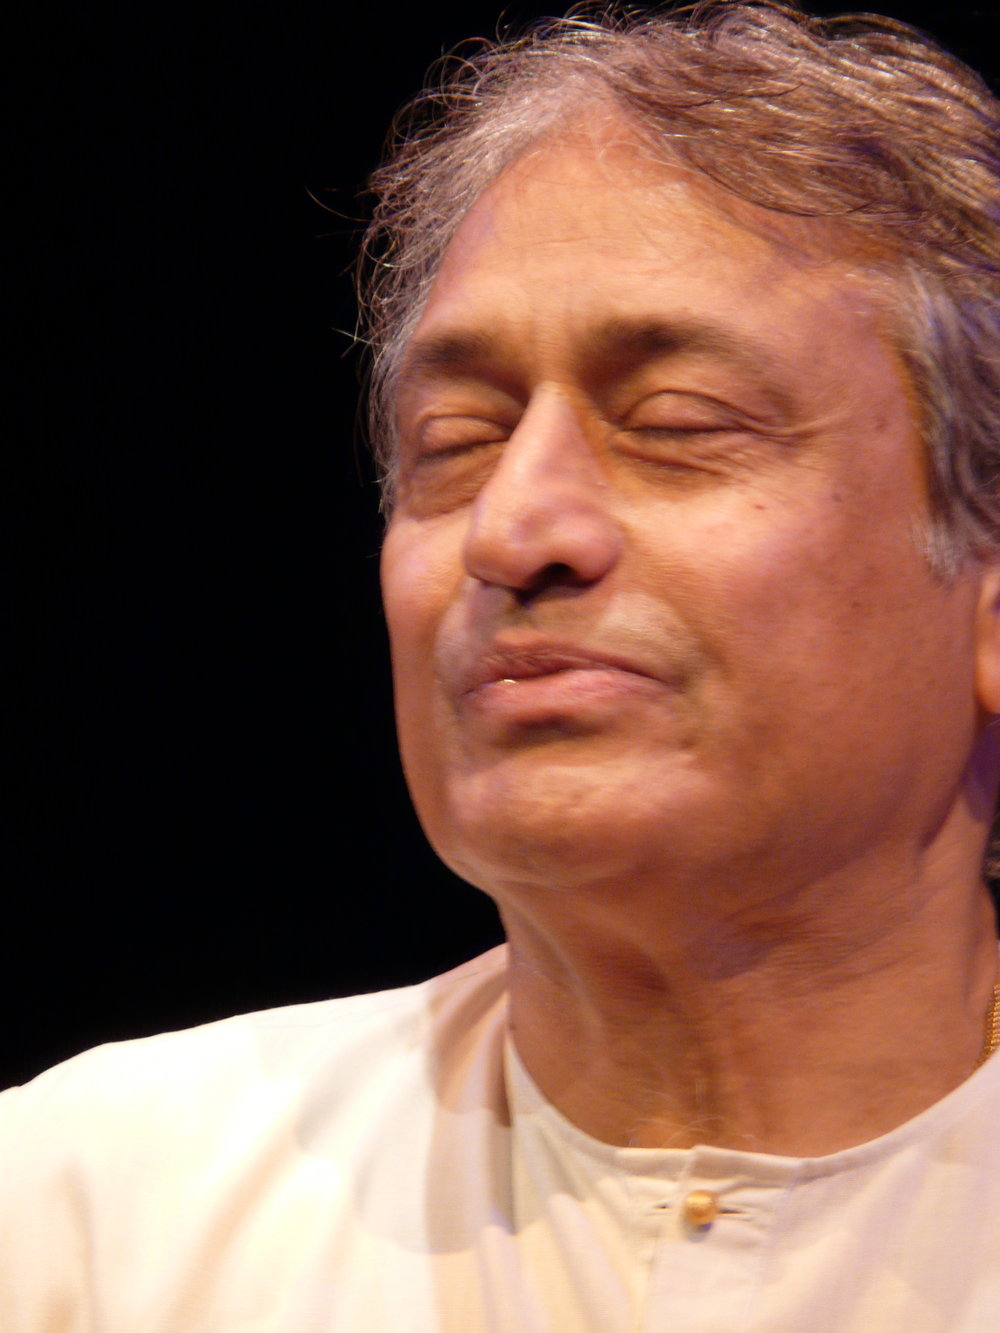 USTAD AMJAD ALI KHAN the Master of the Sarod. Living treasure of India